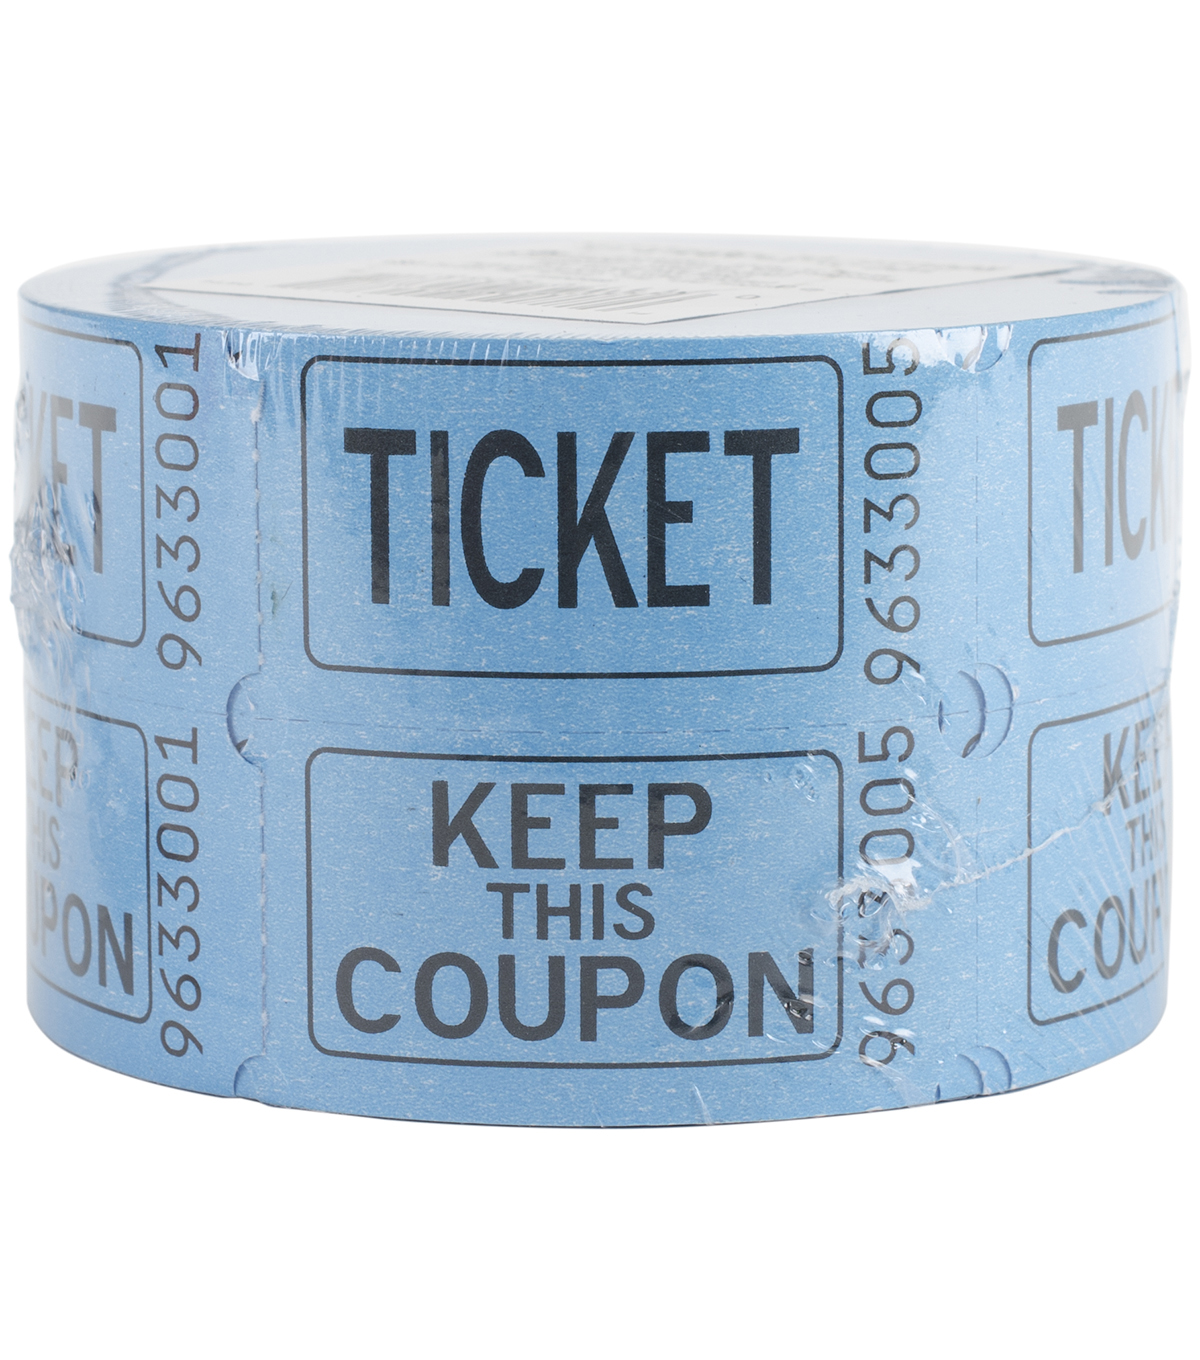 Double Tickets 500 Tickets/Roll-Assorted